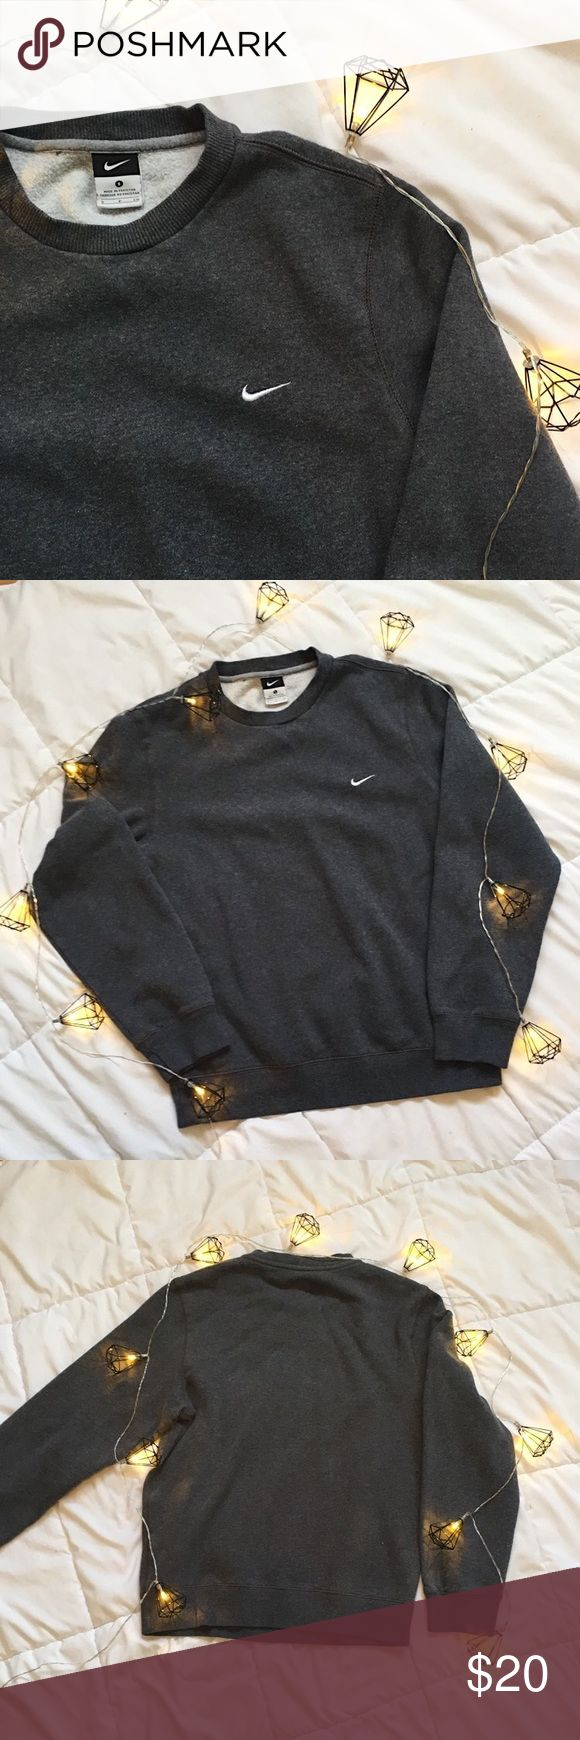 Grey women's Nike crew neck Grey women's Nike crew neck. So comfy and in great condition! Just selling because I have too many jackets. Nike Tops Sweatshirts & Hoodies